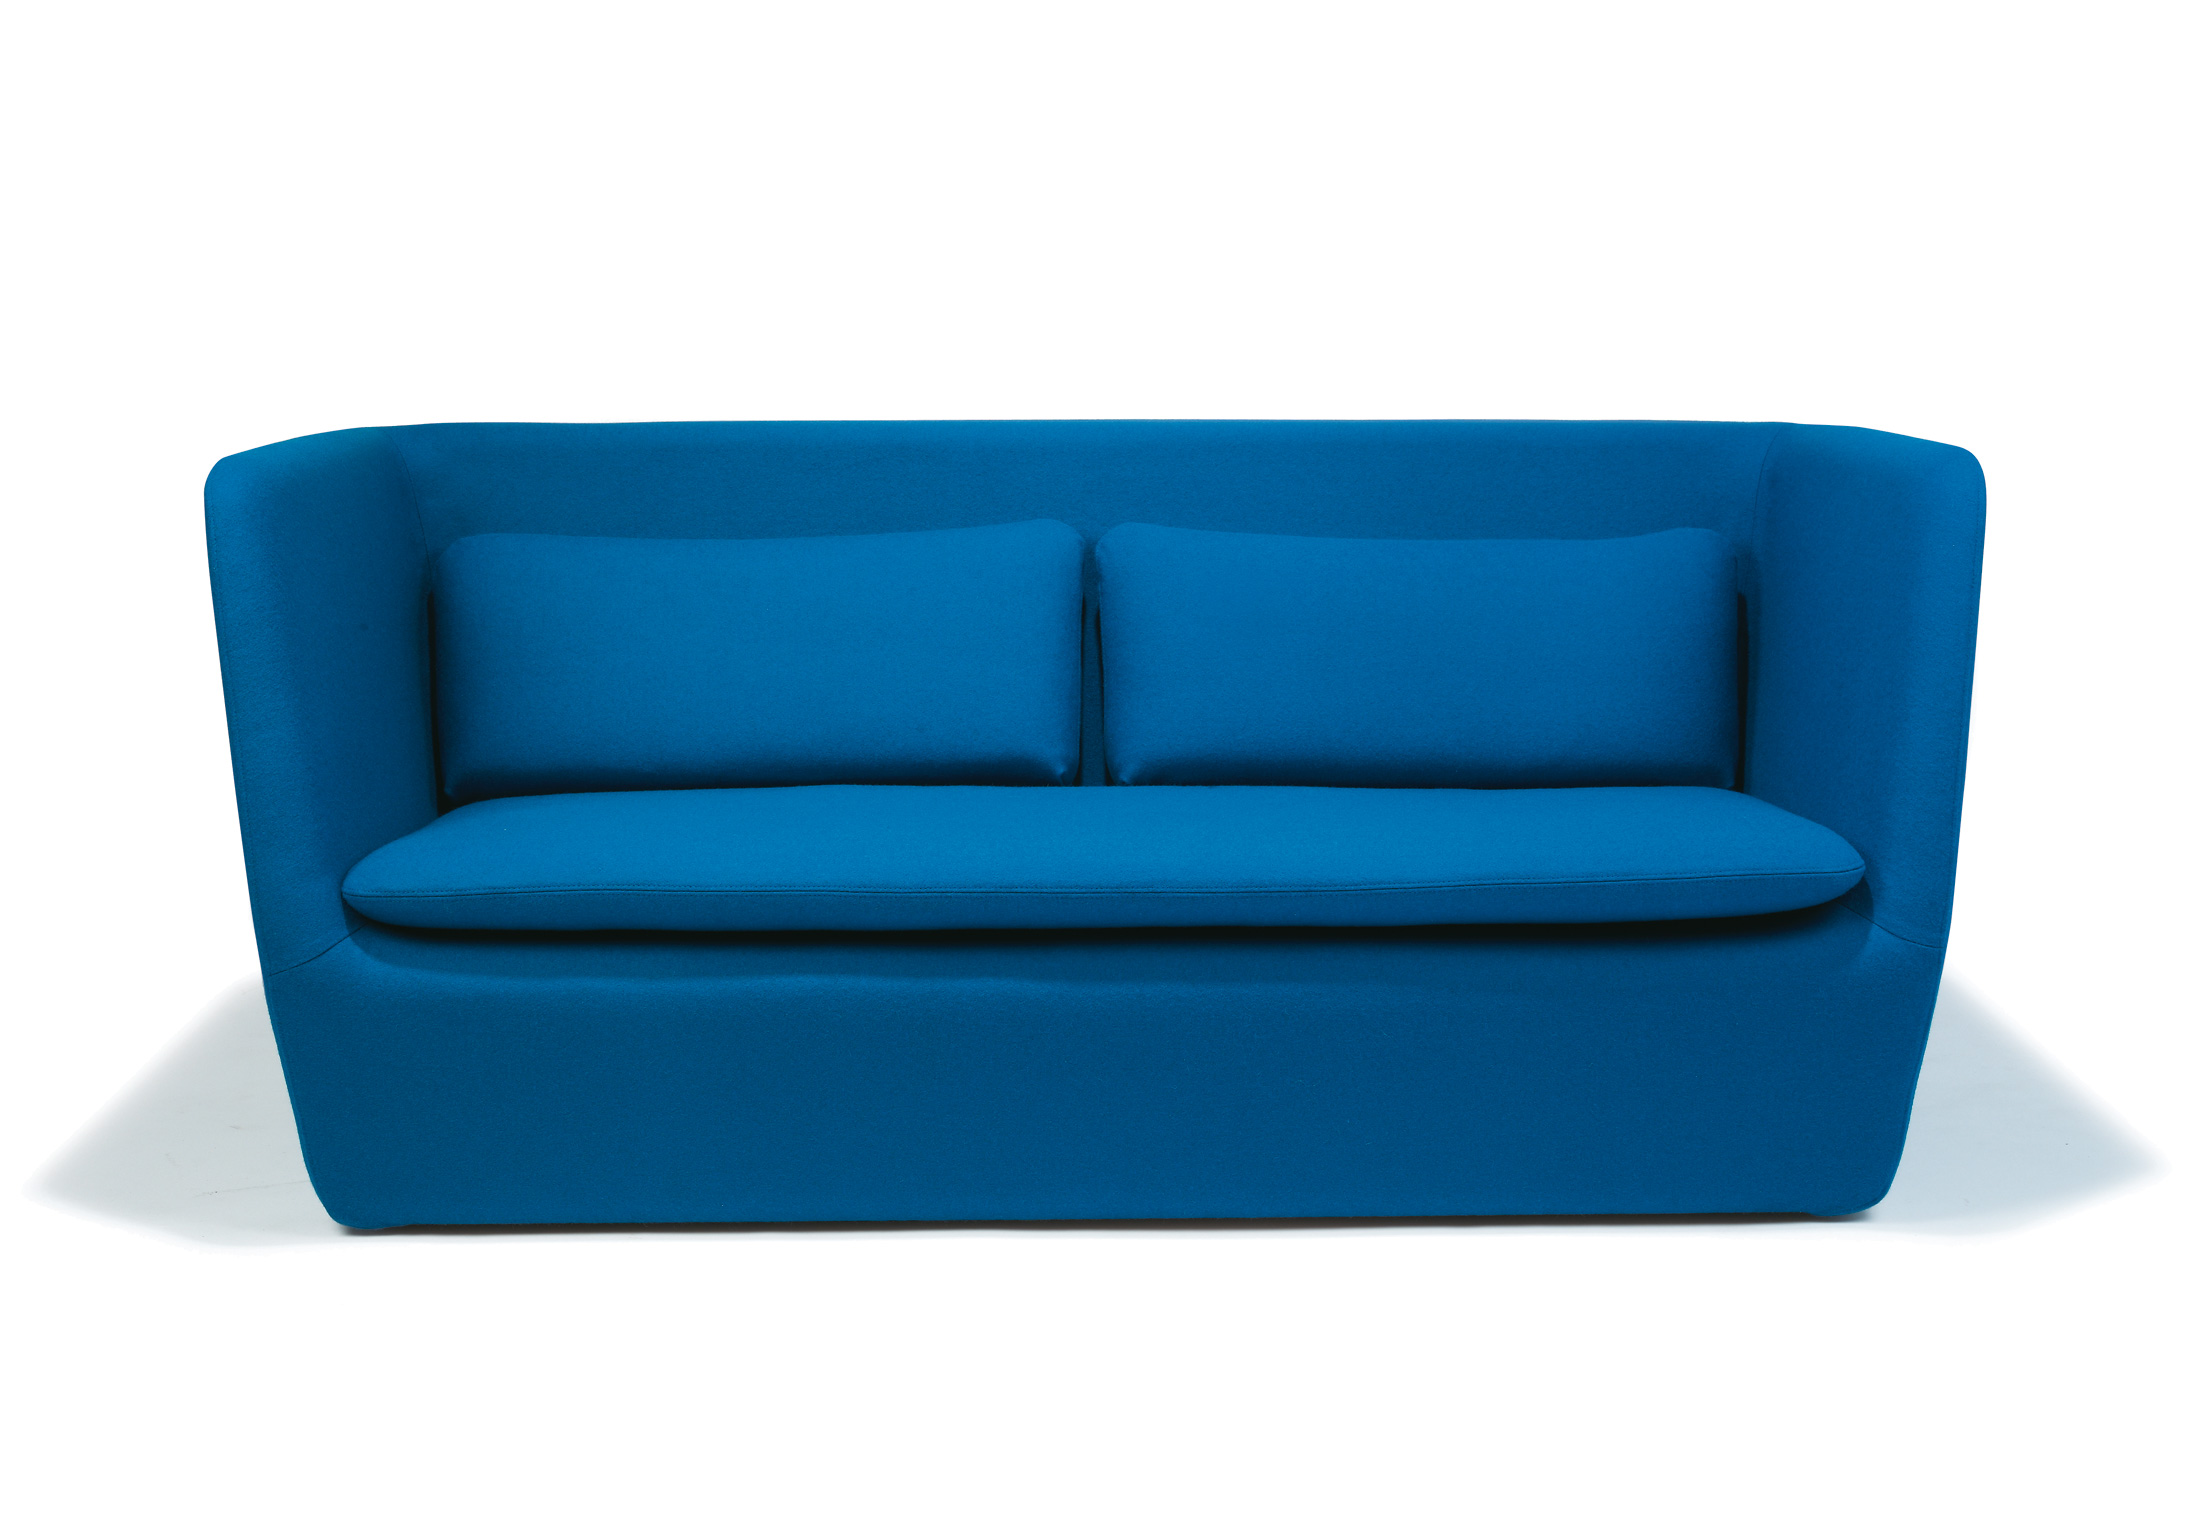 Tremendous Cocoon Tub Sofa By Modus Stylepark Dailytribune Chair Design For Home Dailytribuneorg